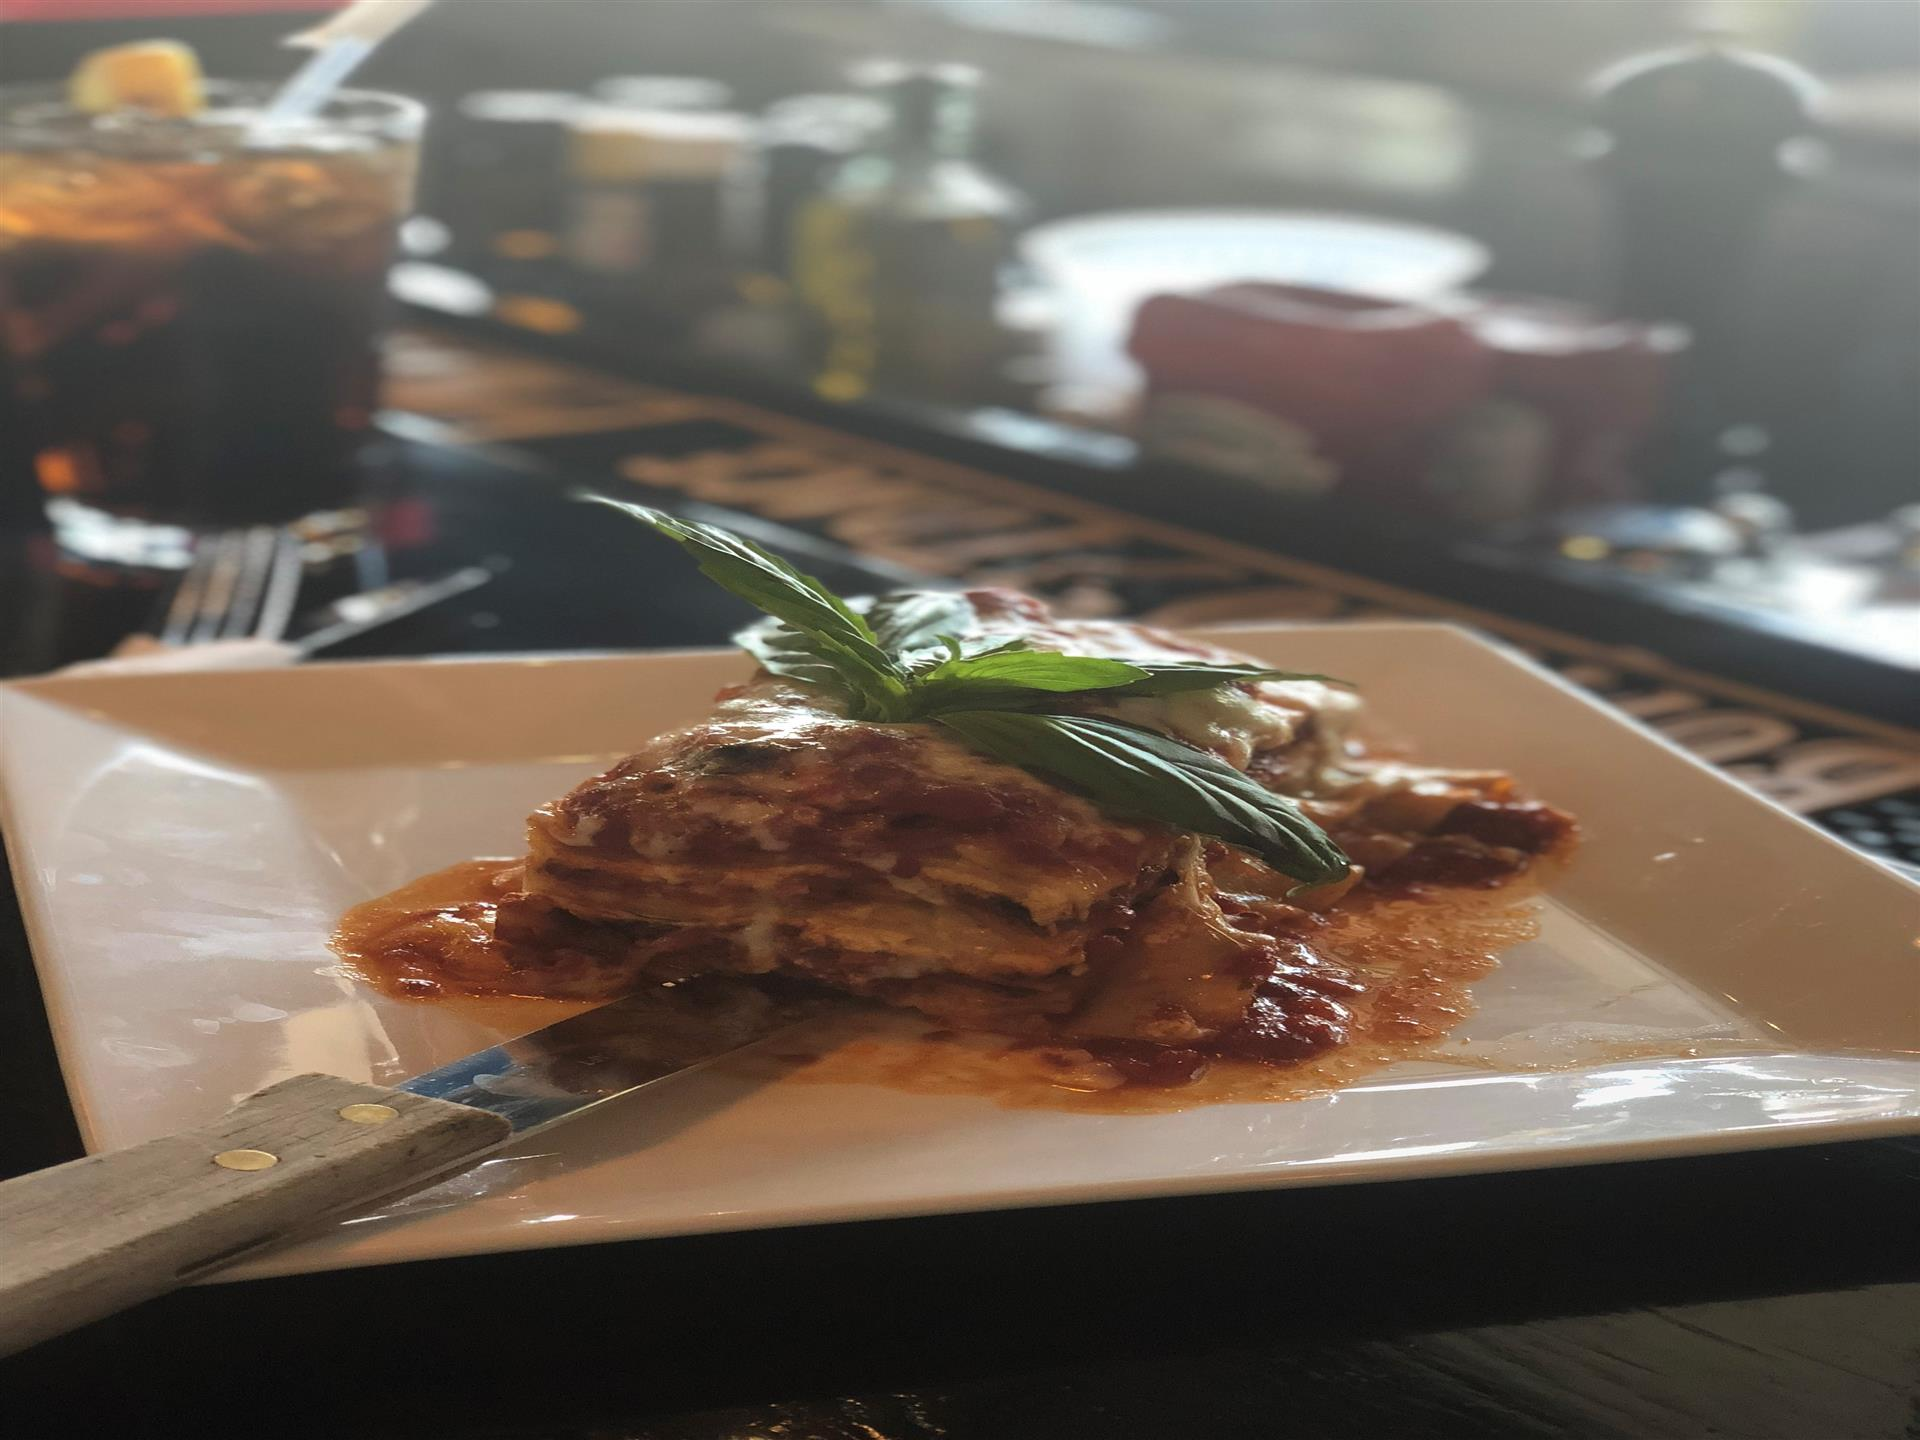 Plated Lasagna slice topped with basil garnish